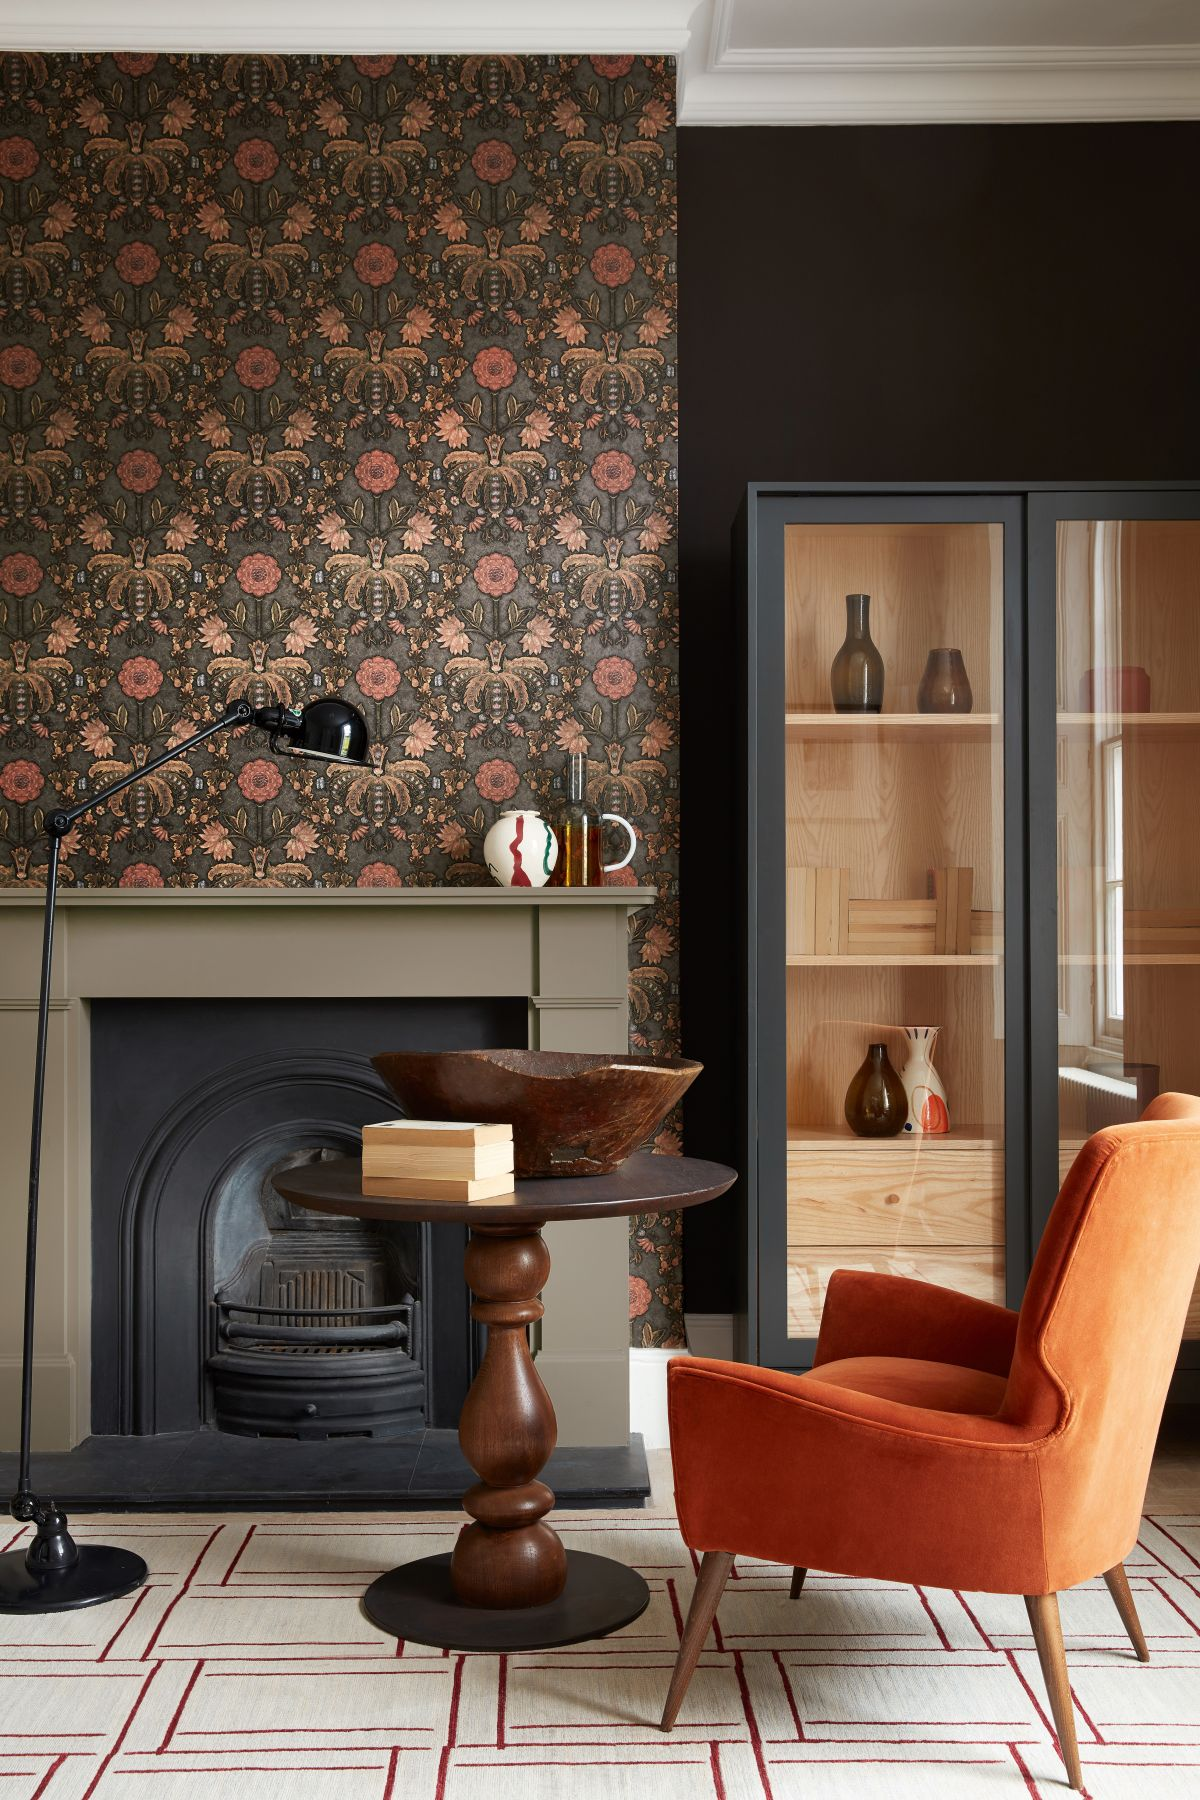 Alcove ideas: 29 ways to make the most of a small space  Real Homes